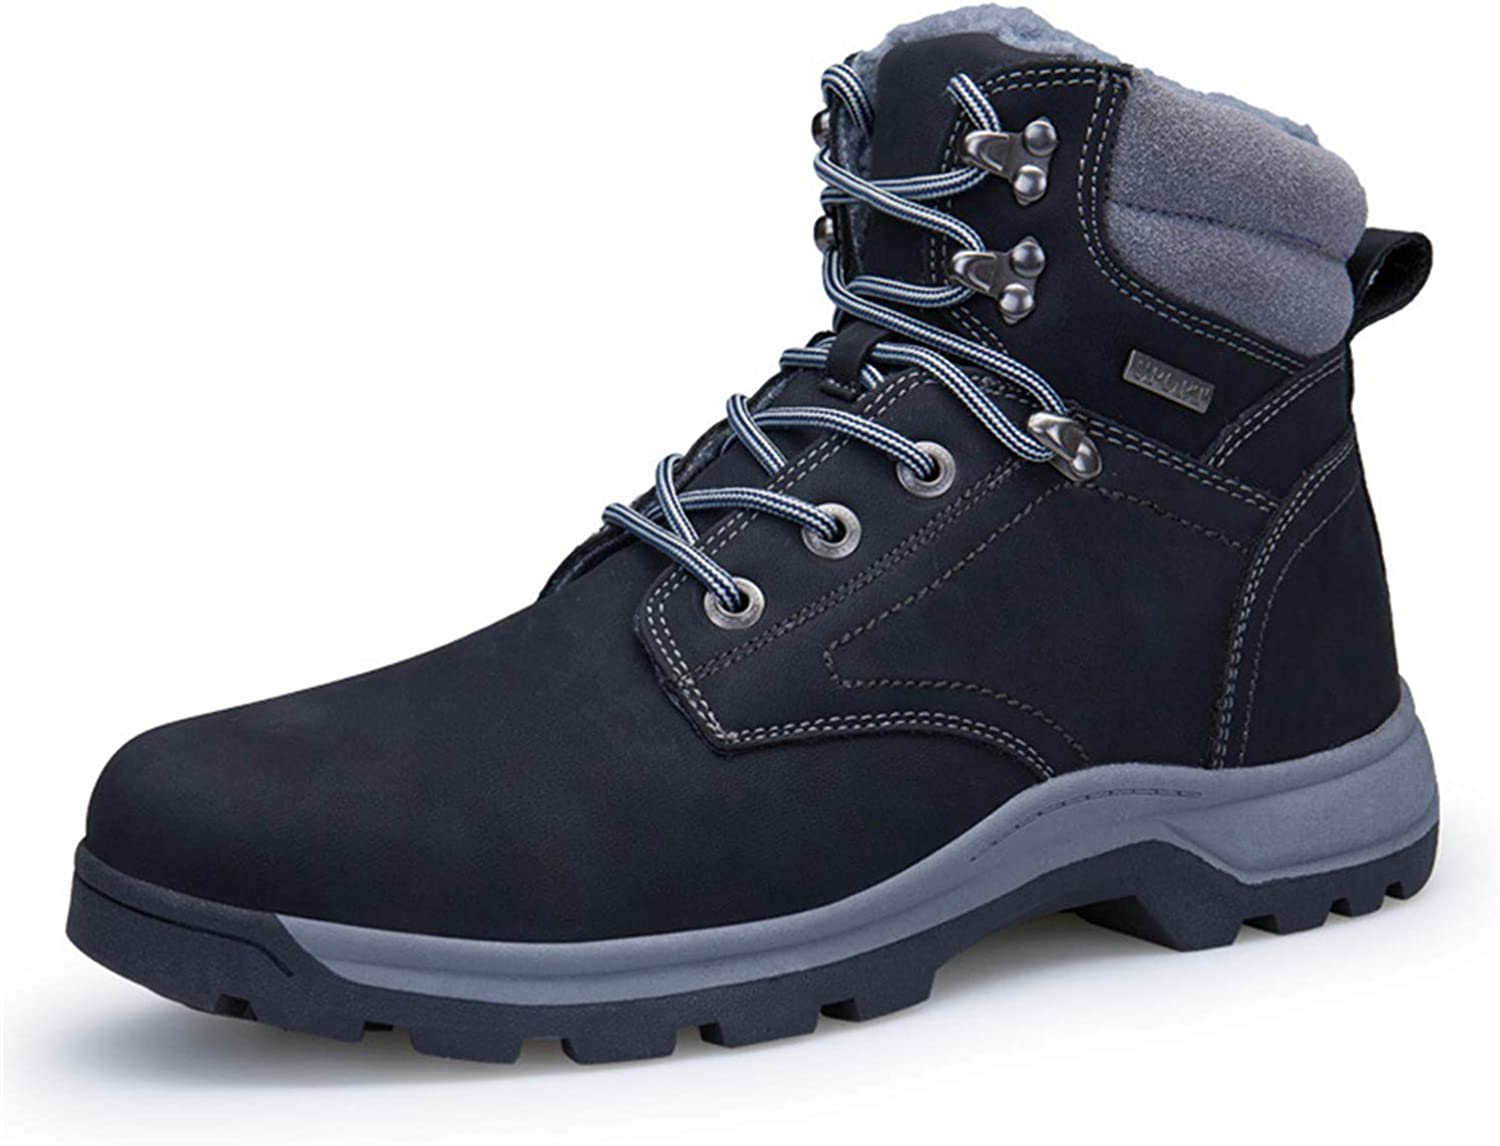 Men Snow Boots Waterproof New Winter Men's Leather Rubber Snow Boots Leisure Outdoor Boots